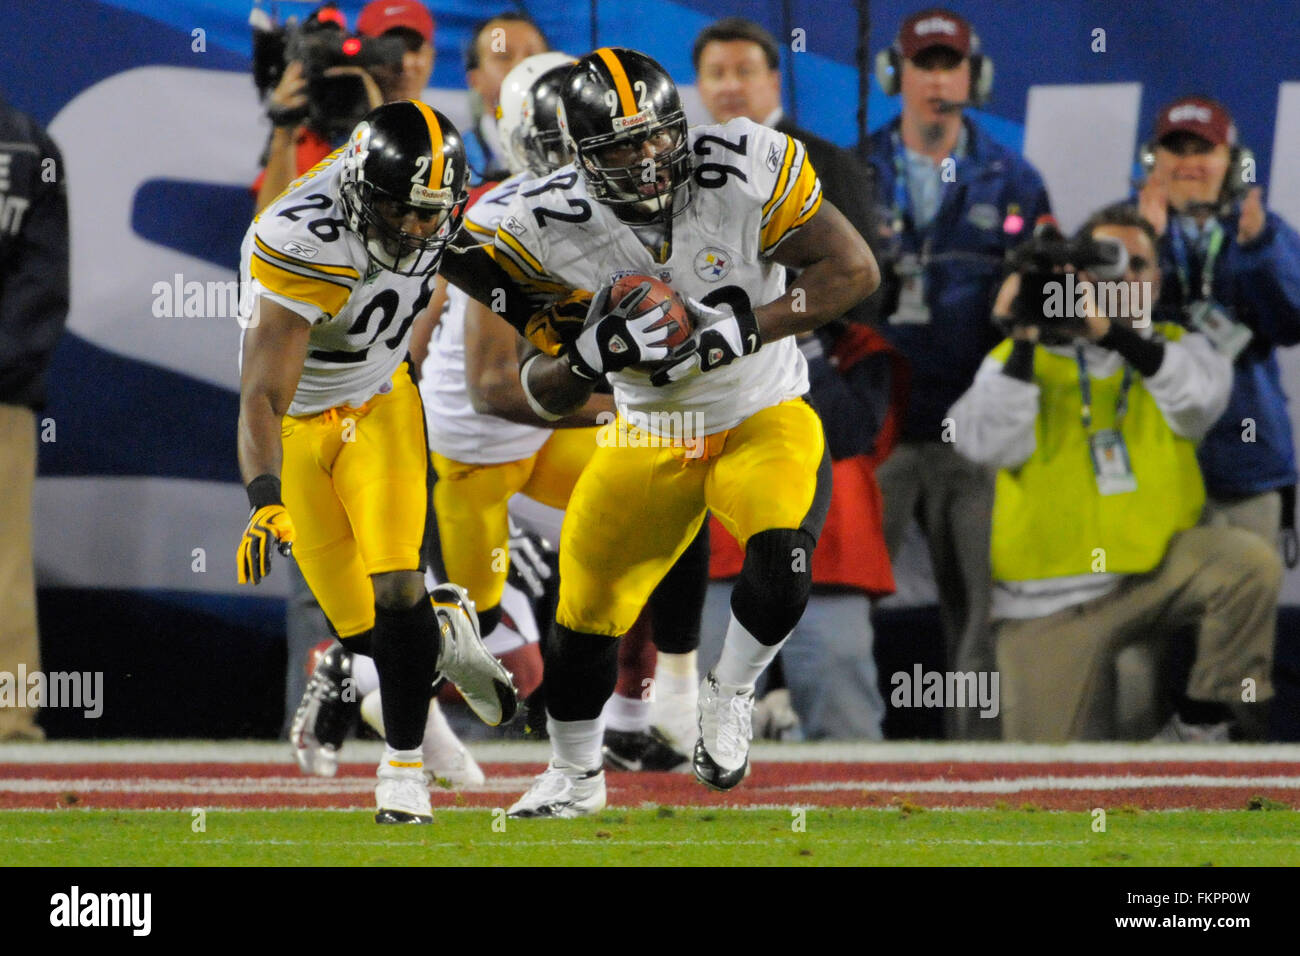 94fb78ba8cf Pittsburgh Steelers linebacker James Harrison (92) returns an interception  for a record 100 yards during the Steelers 27-23 win over the Arizona  Cardinals ...